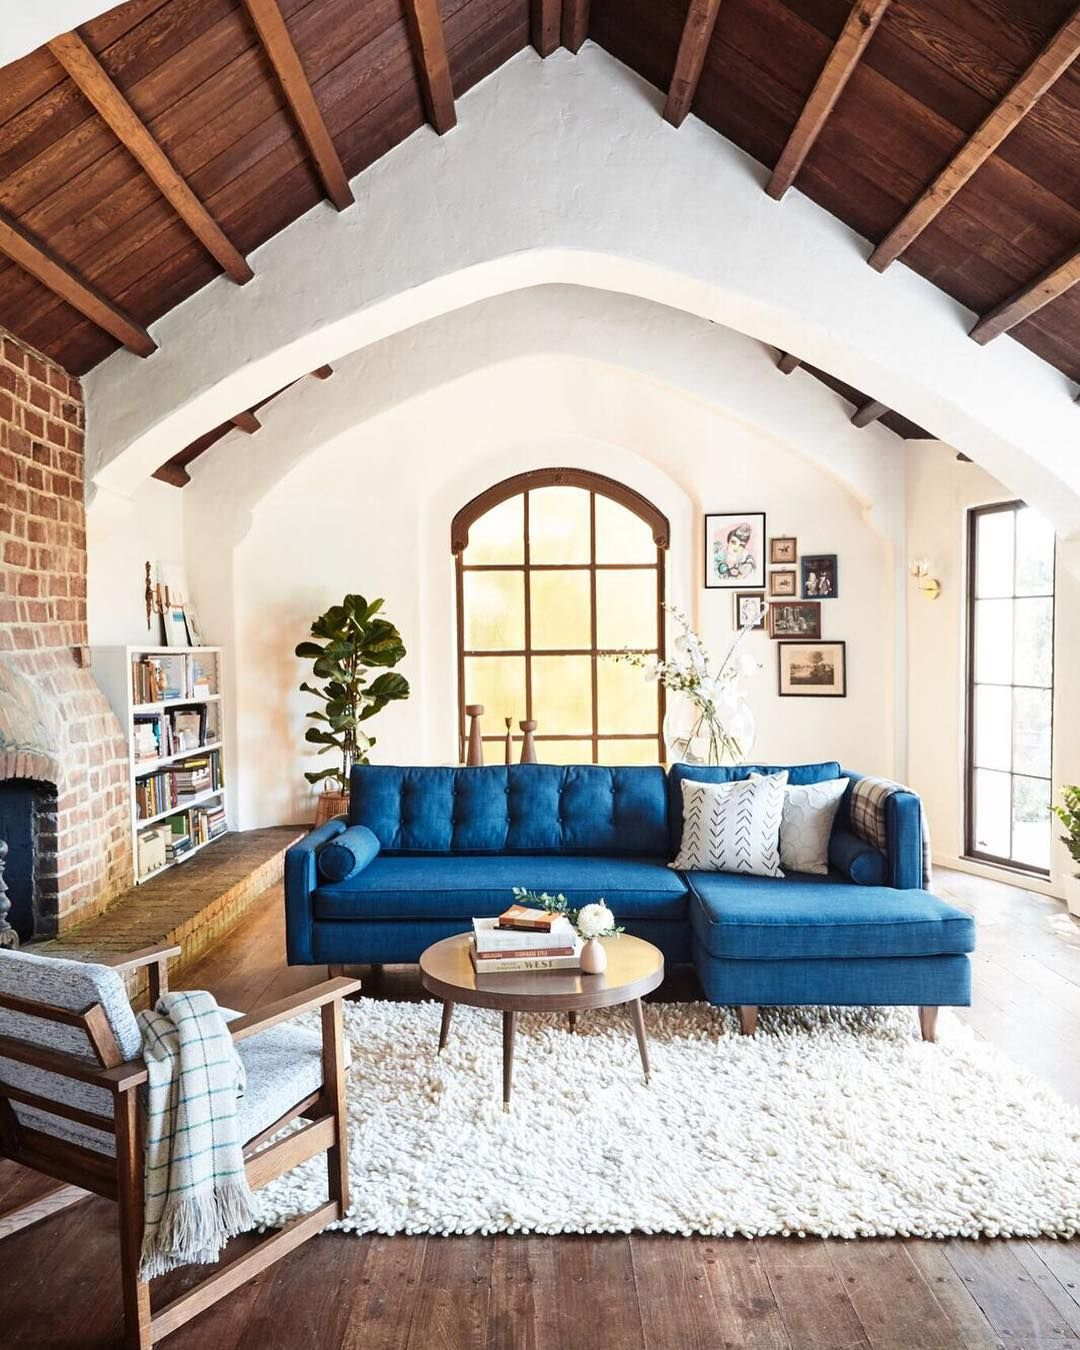 Check Out Sunny California Home Remodel With One Of Our Chunky Shag Rugs!  We Also Have To Say That Those Exposed Beams Are Giving Us All Of The Heart  Eyes ...